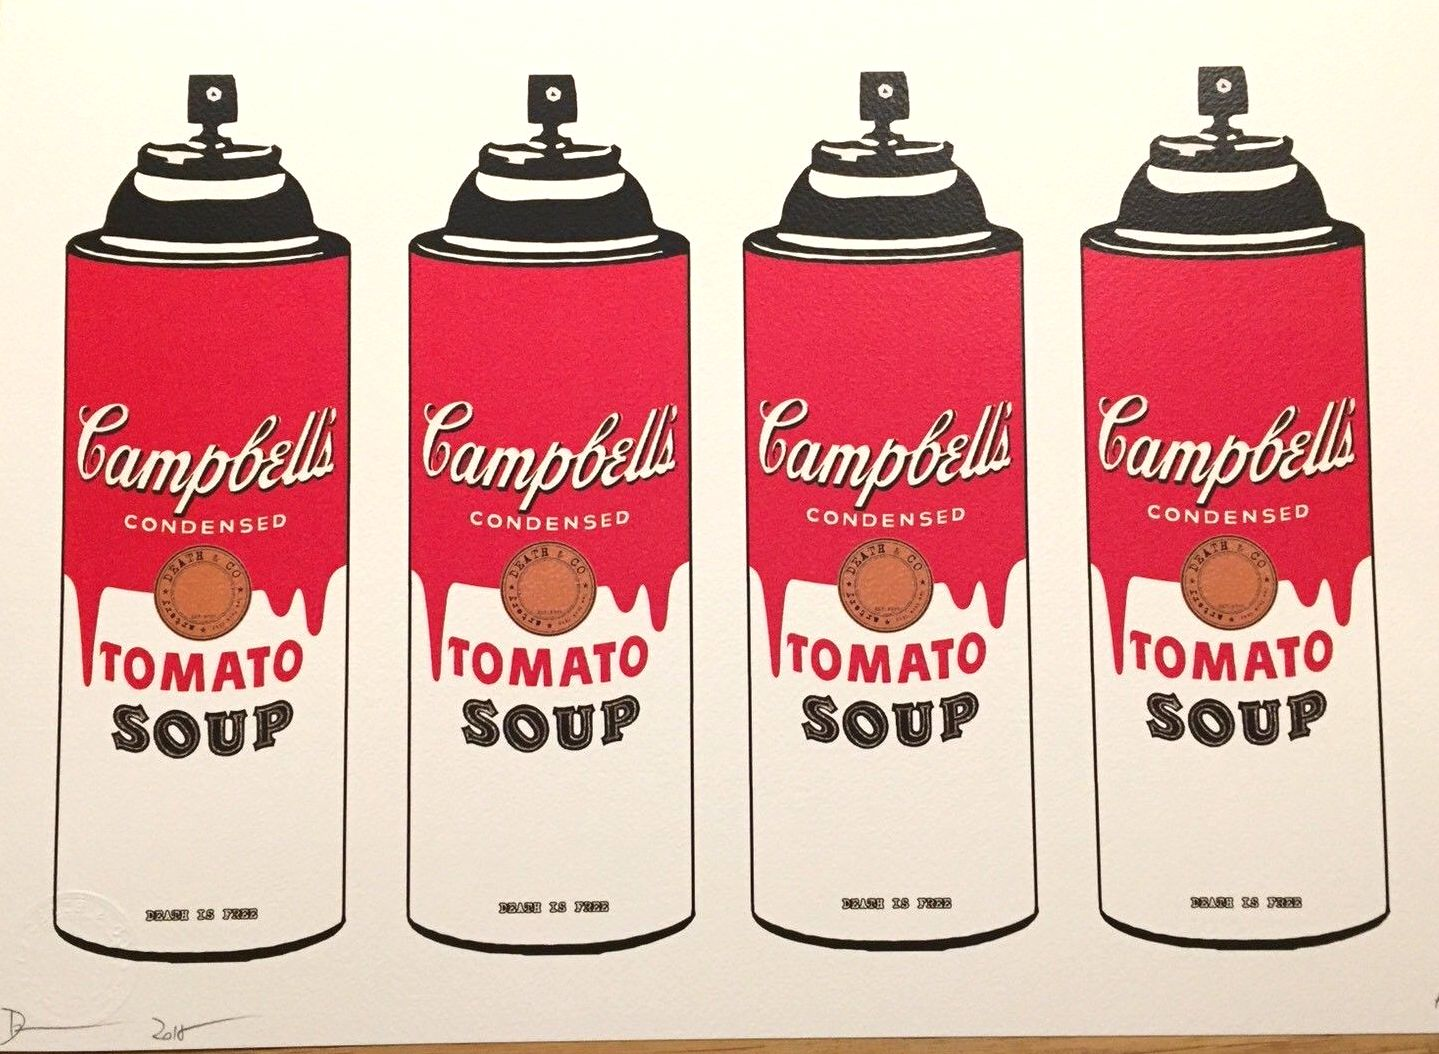 4 spray cans that are labeled as if they were Campbell's tomato soup cans. The labels are bright red and are dripping down like spray paint.